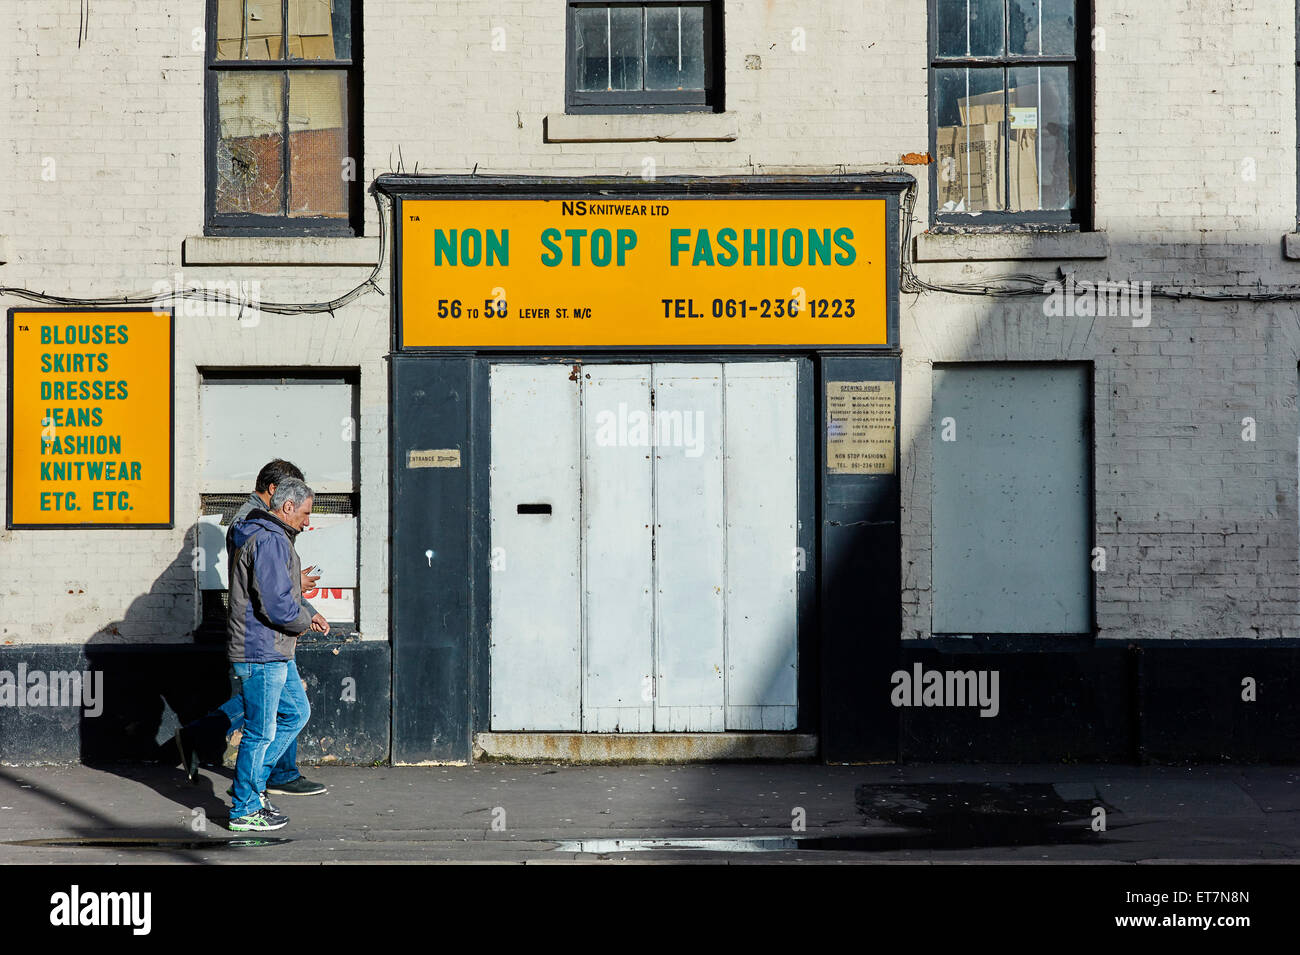 Non stop fashions, Lever Street, Manchester Northern quarter - Stock Image